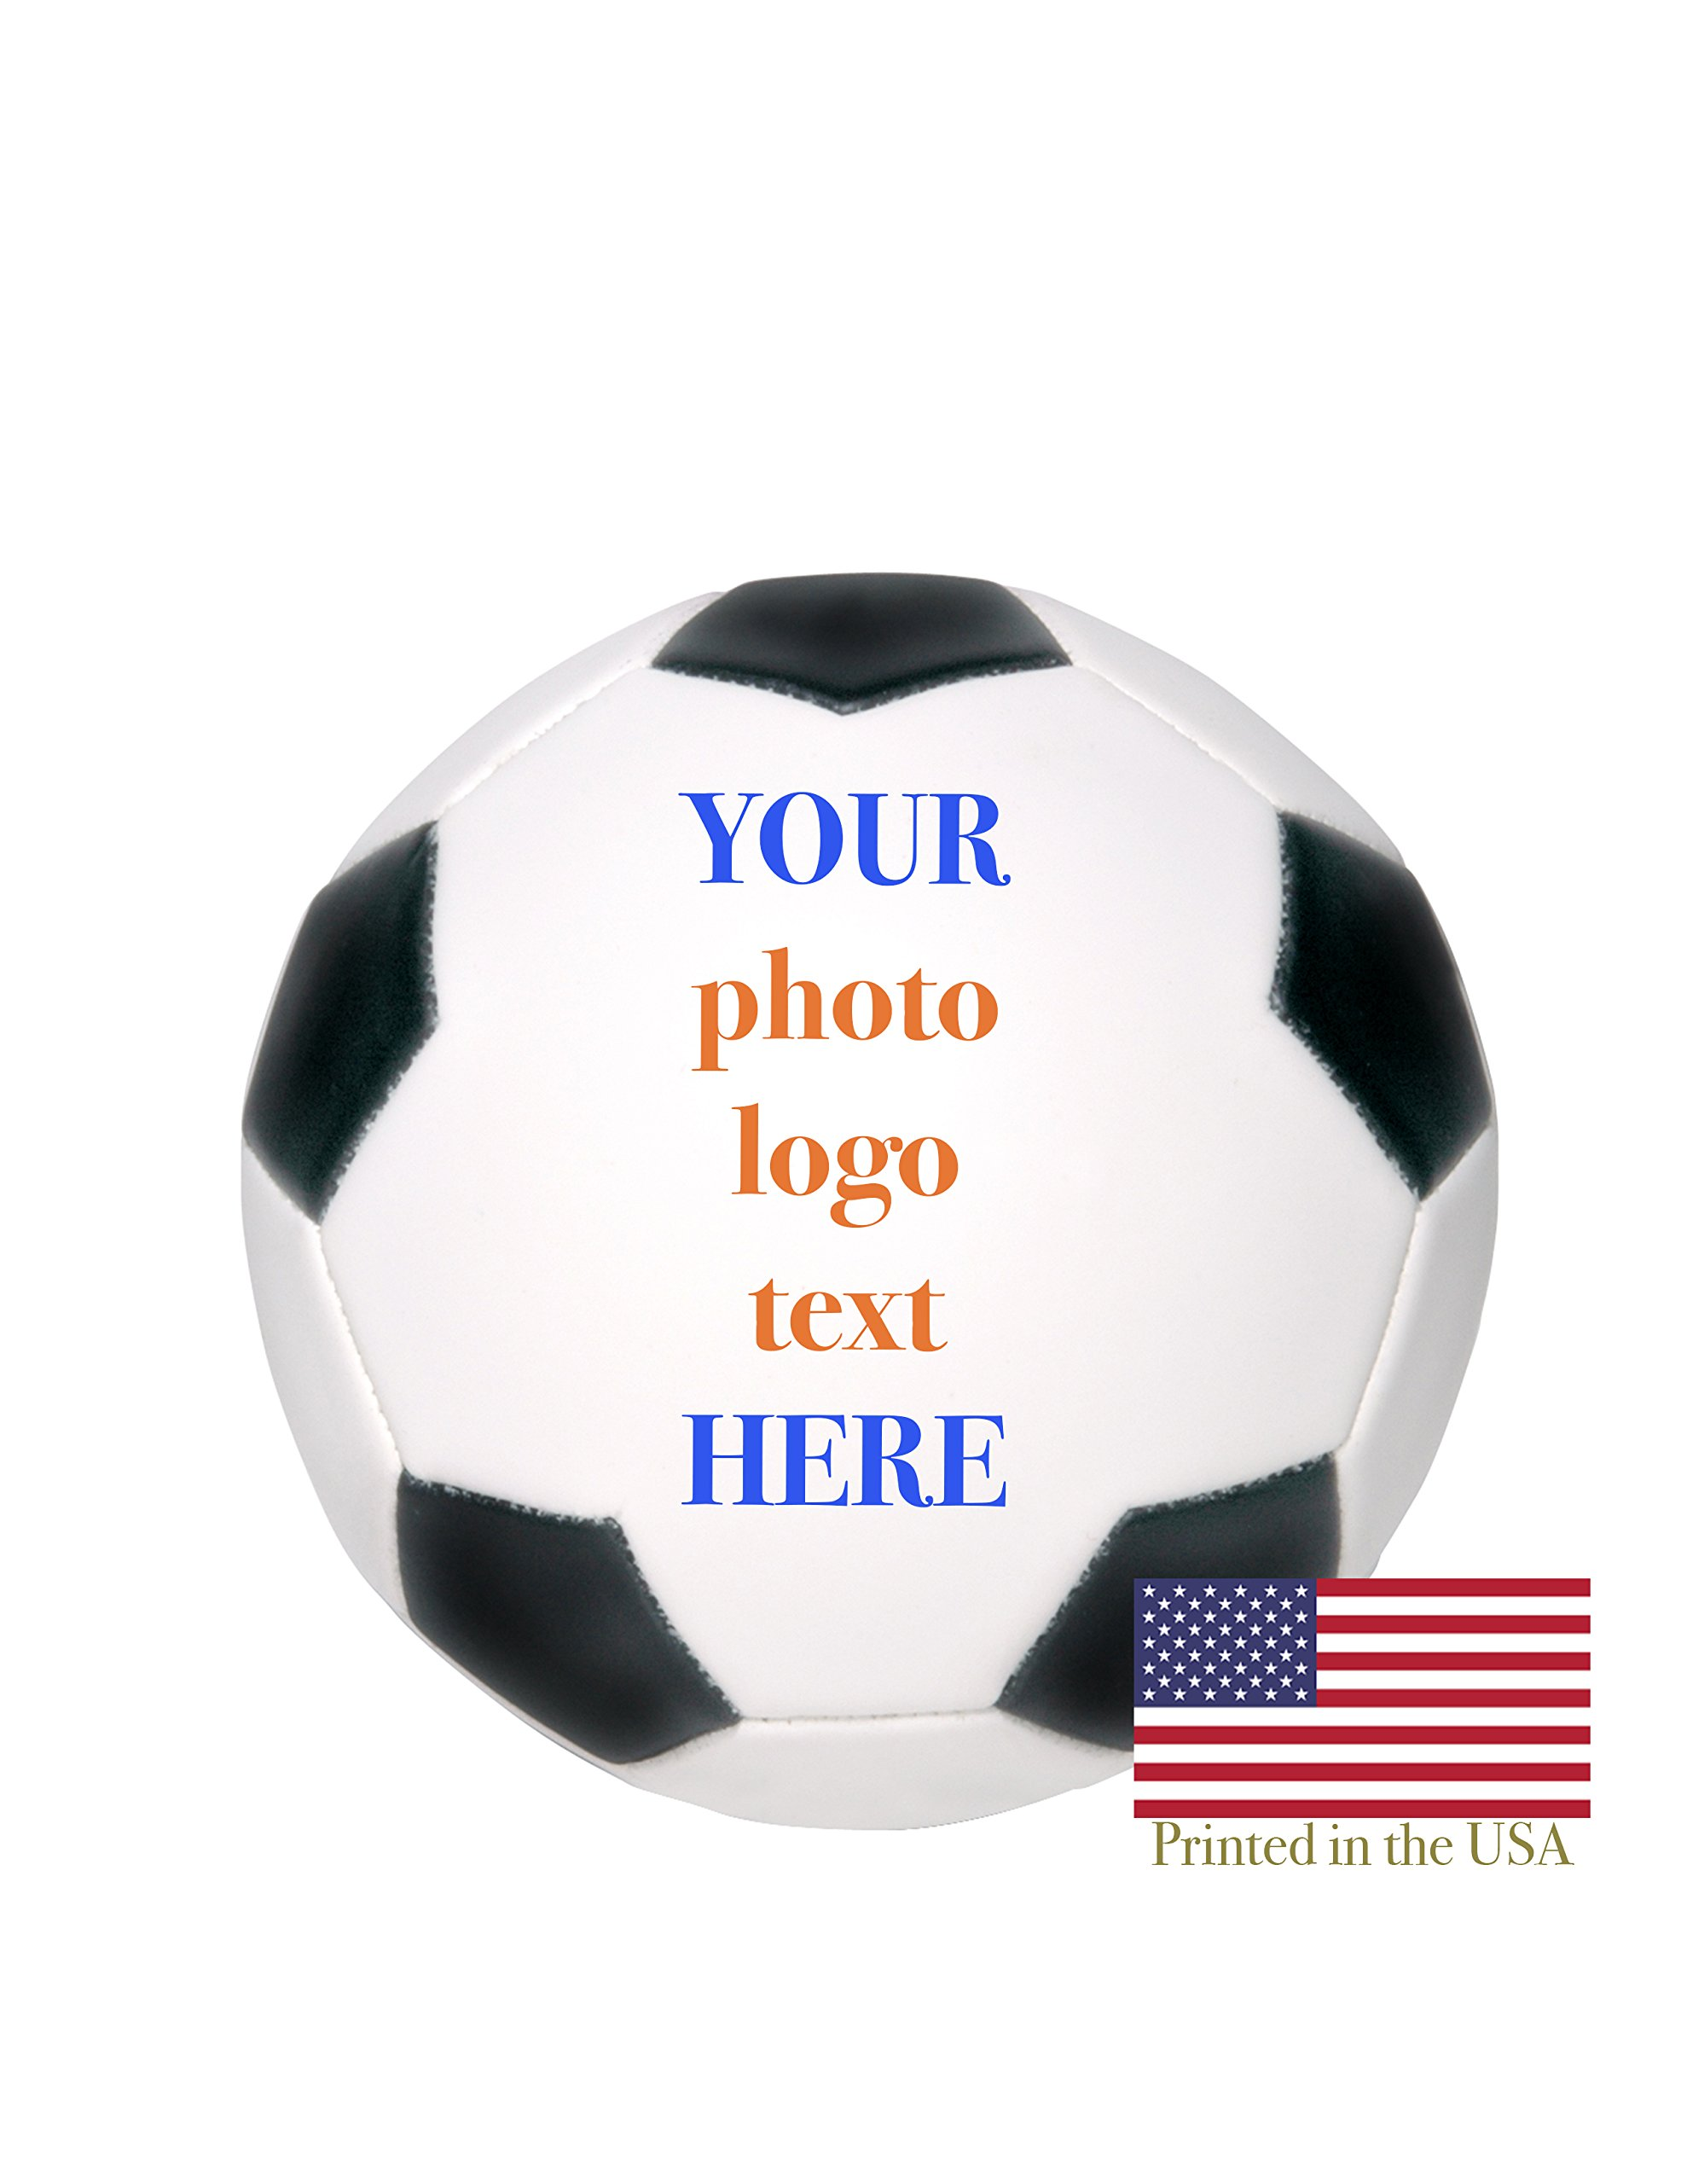 Custom Personalized Mini Soccer Ball 6 Inch Soccer Ball Ships Next Day, High Resolution Photos, Logos & Text on Soccer Balls for Trophies, Personalized Gifts